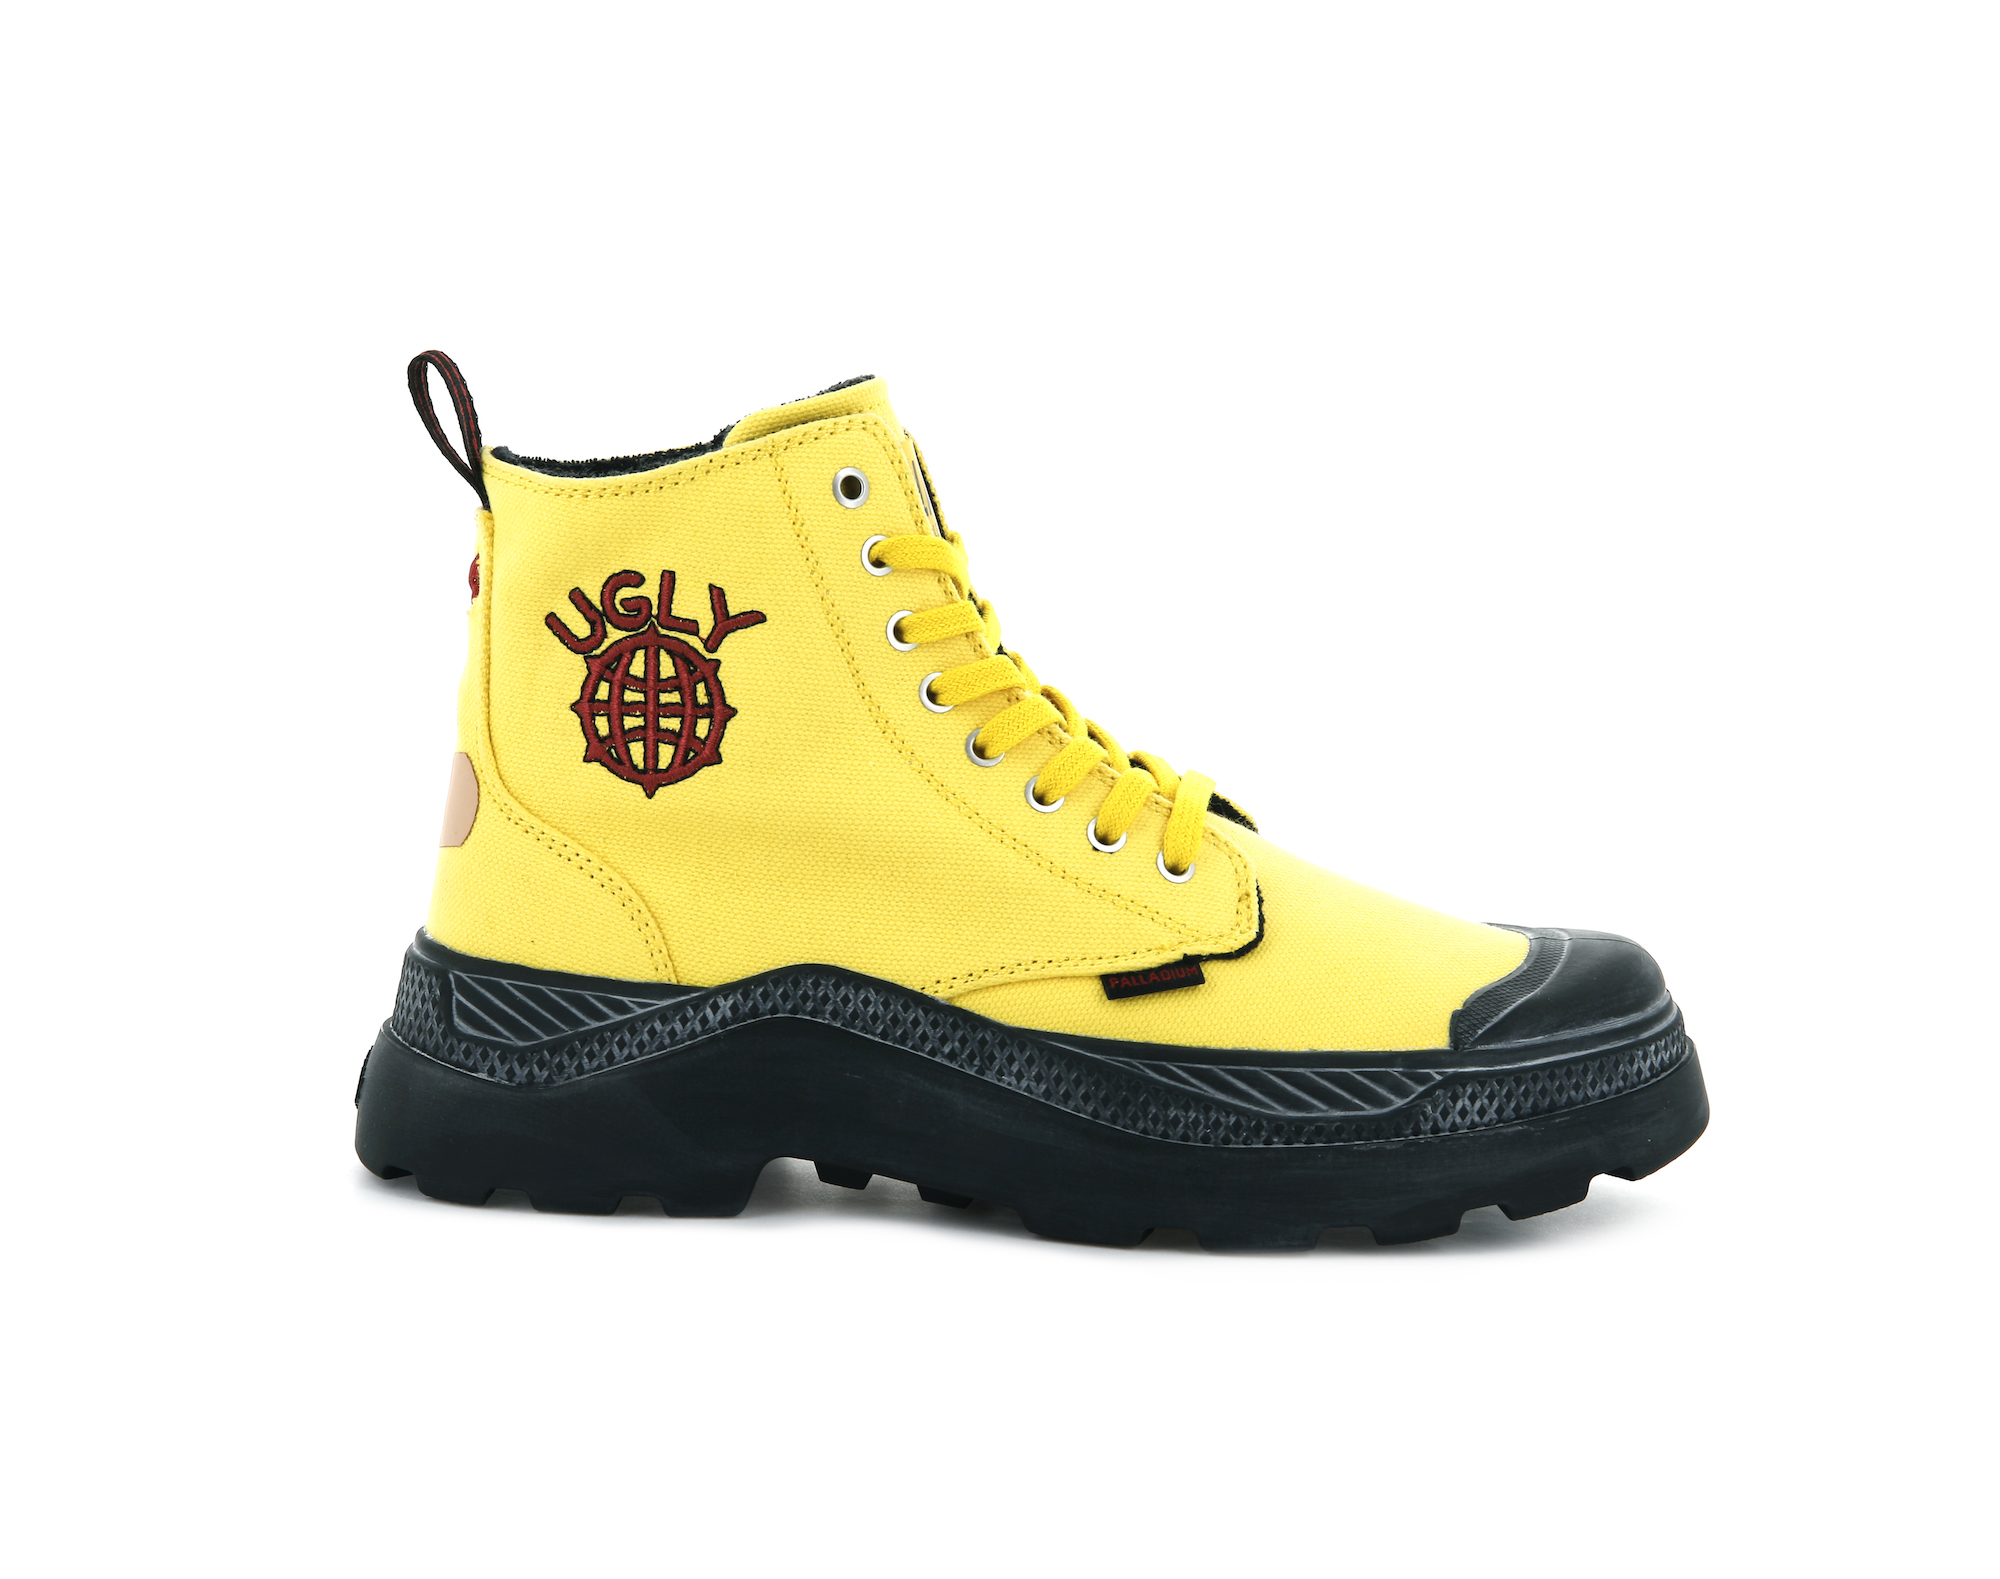 Palladium x Ugly Worldwide yellow boots